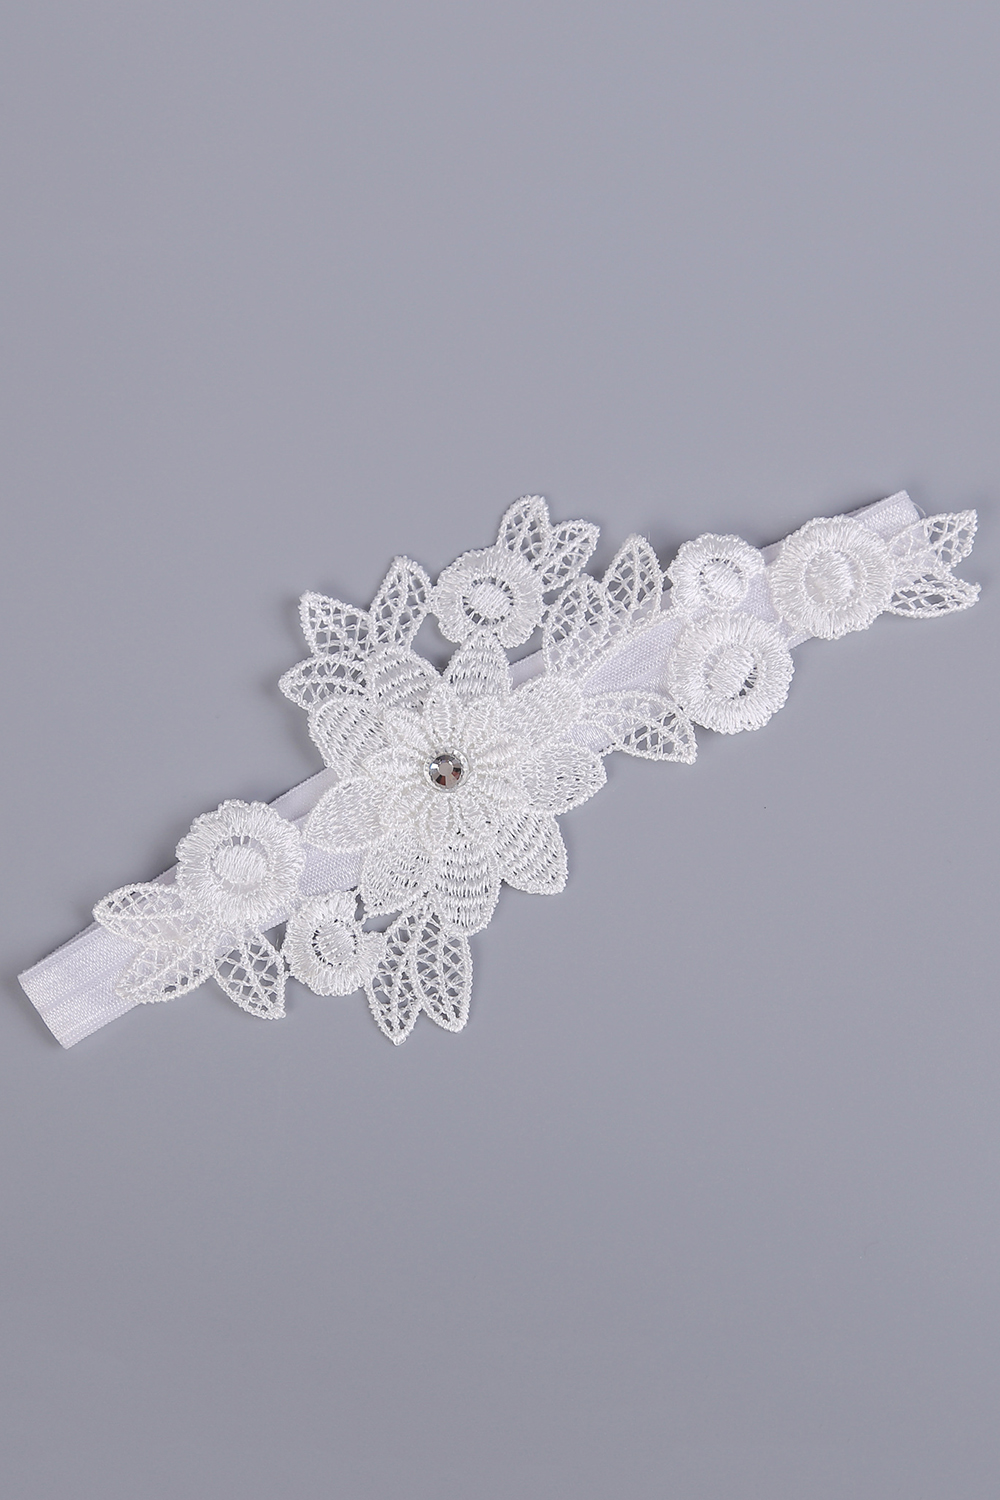 Wedding Accessories Fast Deliver Wedding Gloves 2018 Hot-selling Vintage Lace Bridal Leg Garter With Blue Rhinestones Ivory Appliques Wedding Accessories Fi034 Bridal Gloves